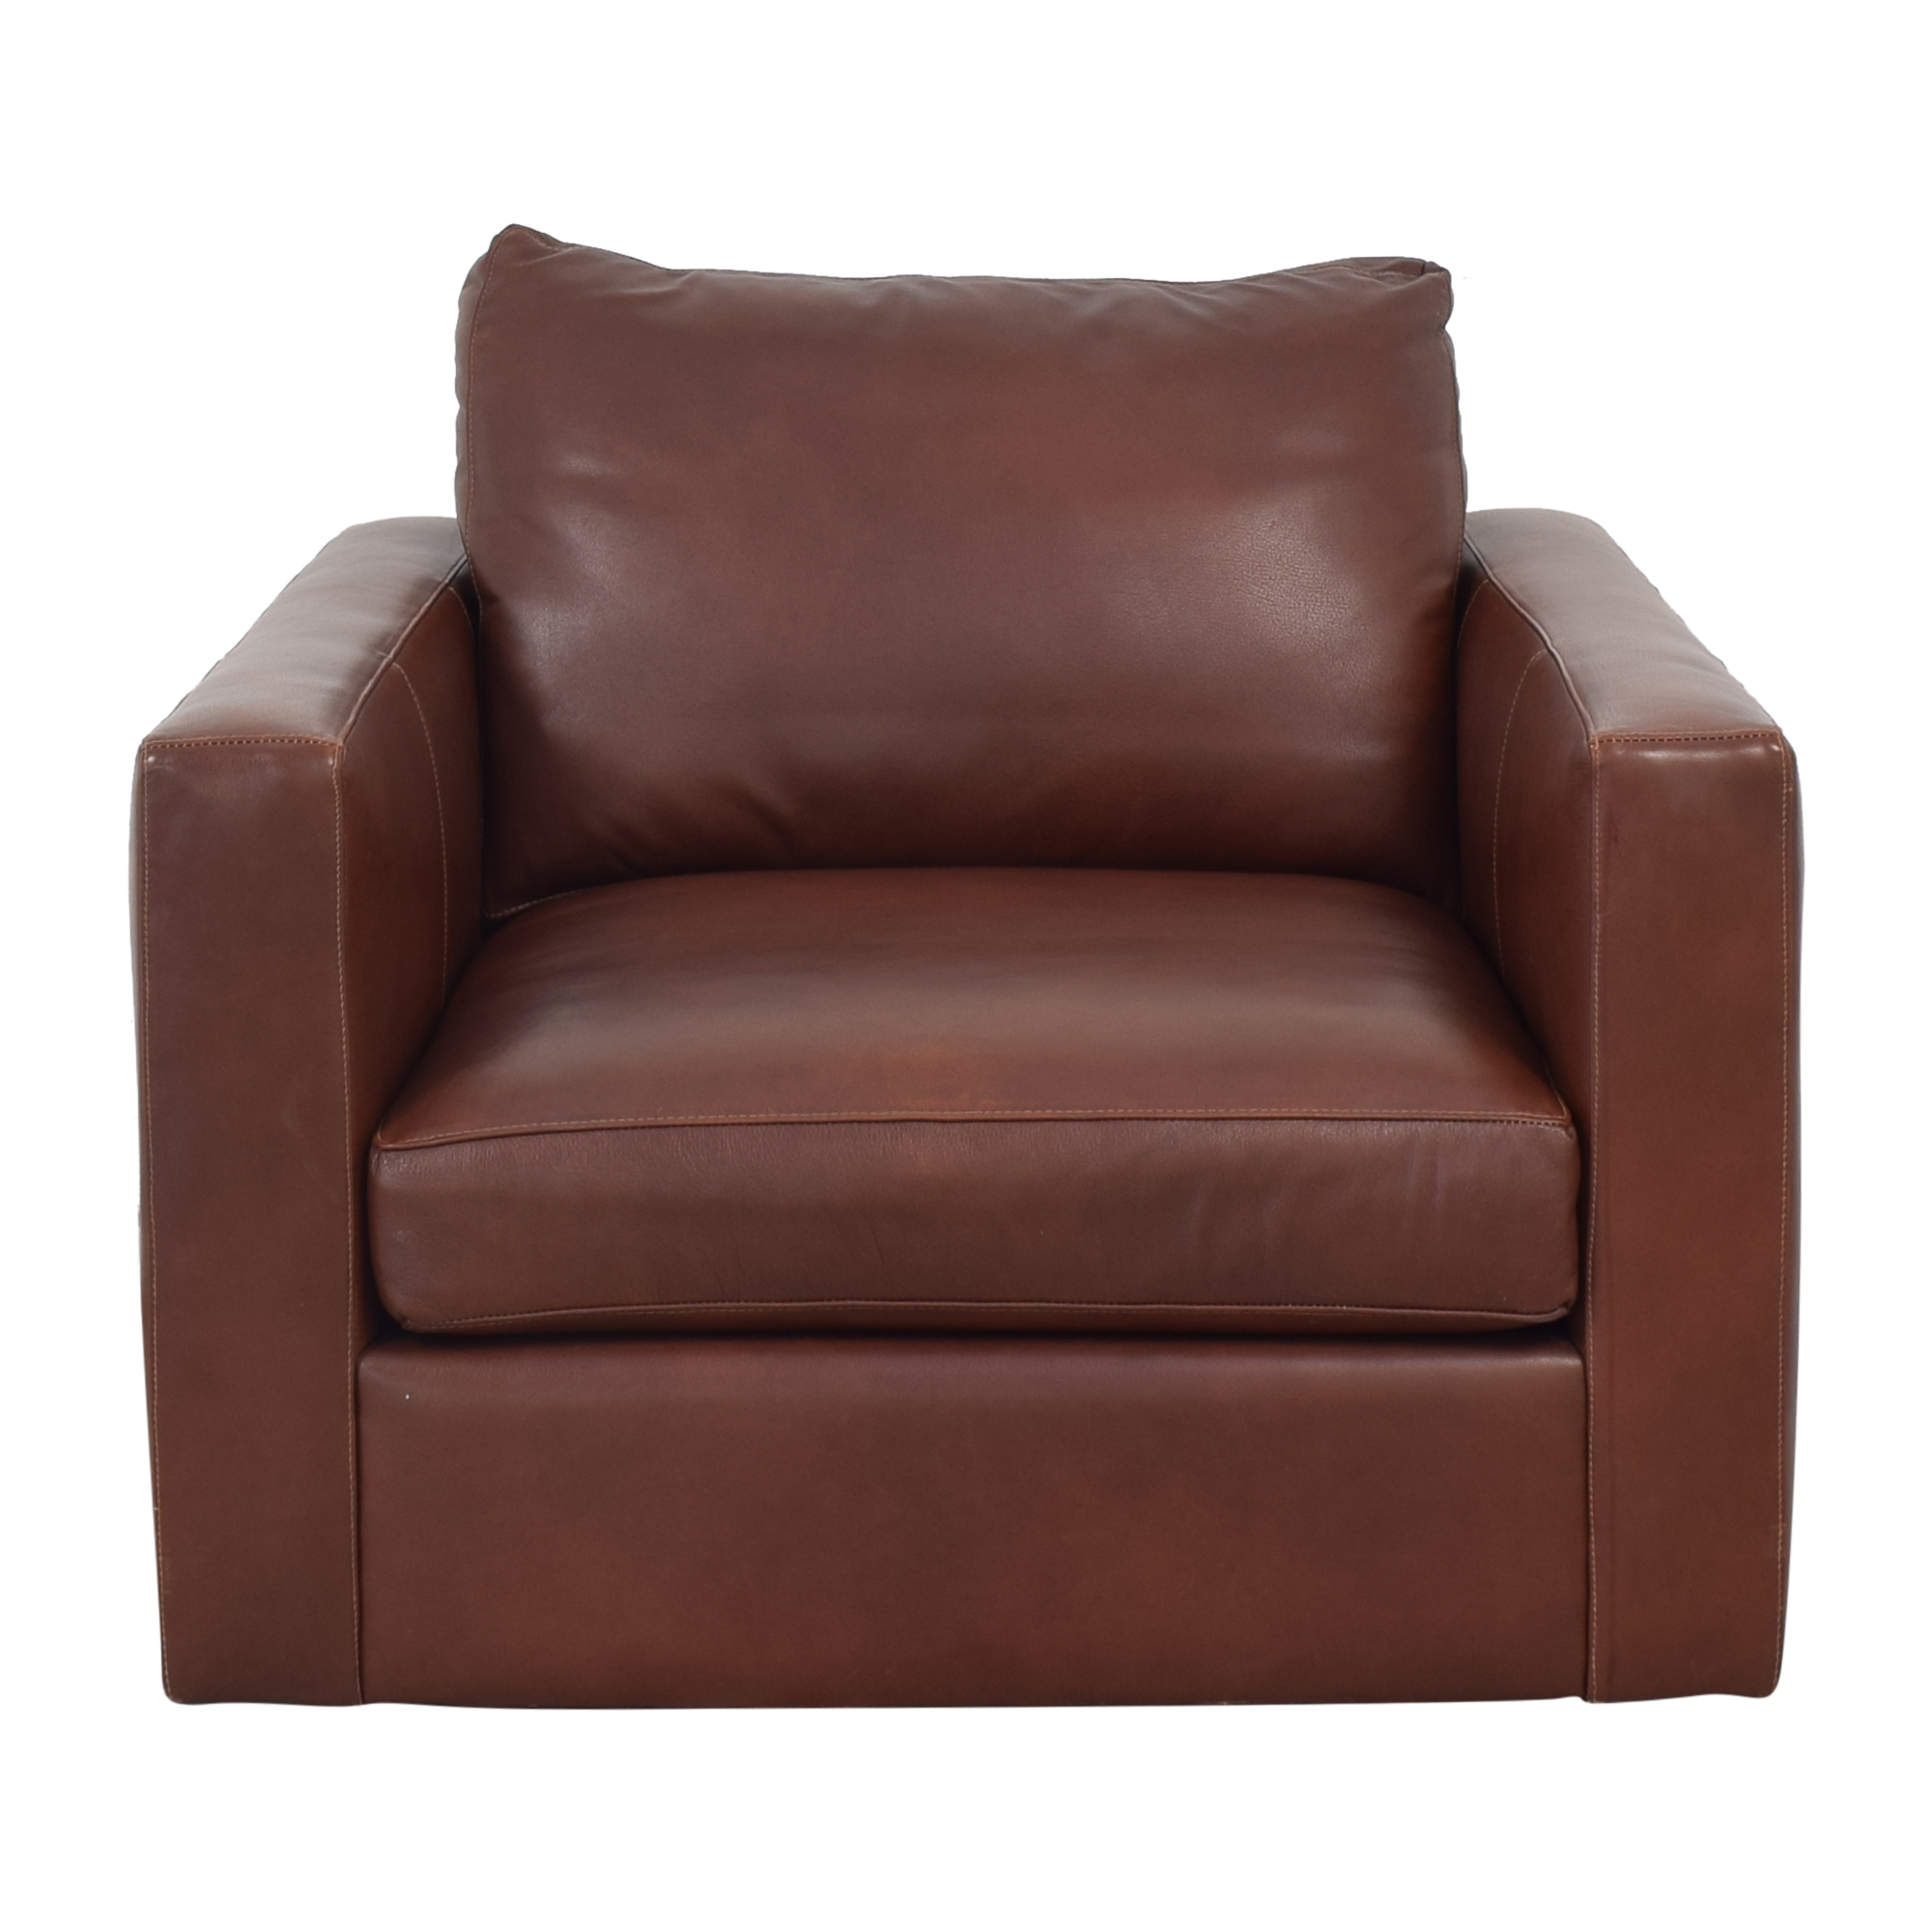 ABC Carpet & Home Cobble Hill Swivel Chair sale